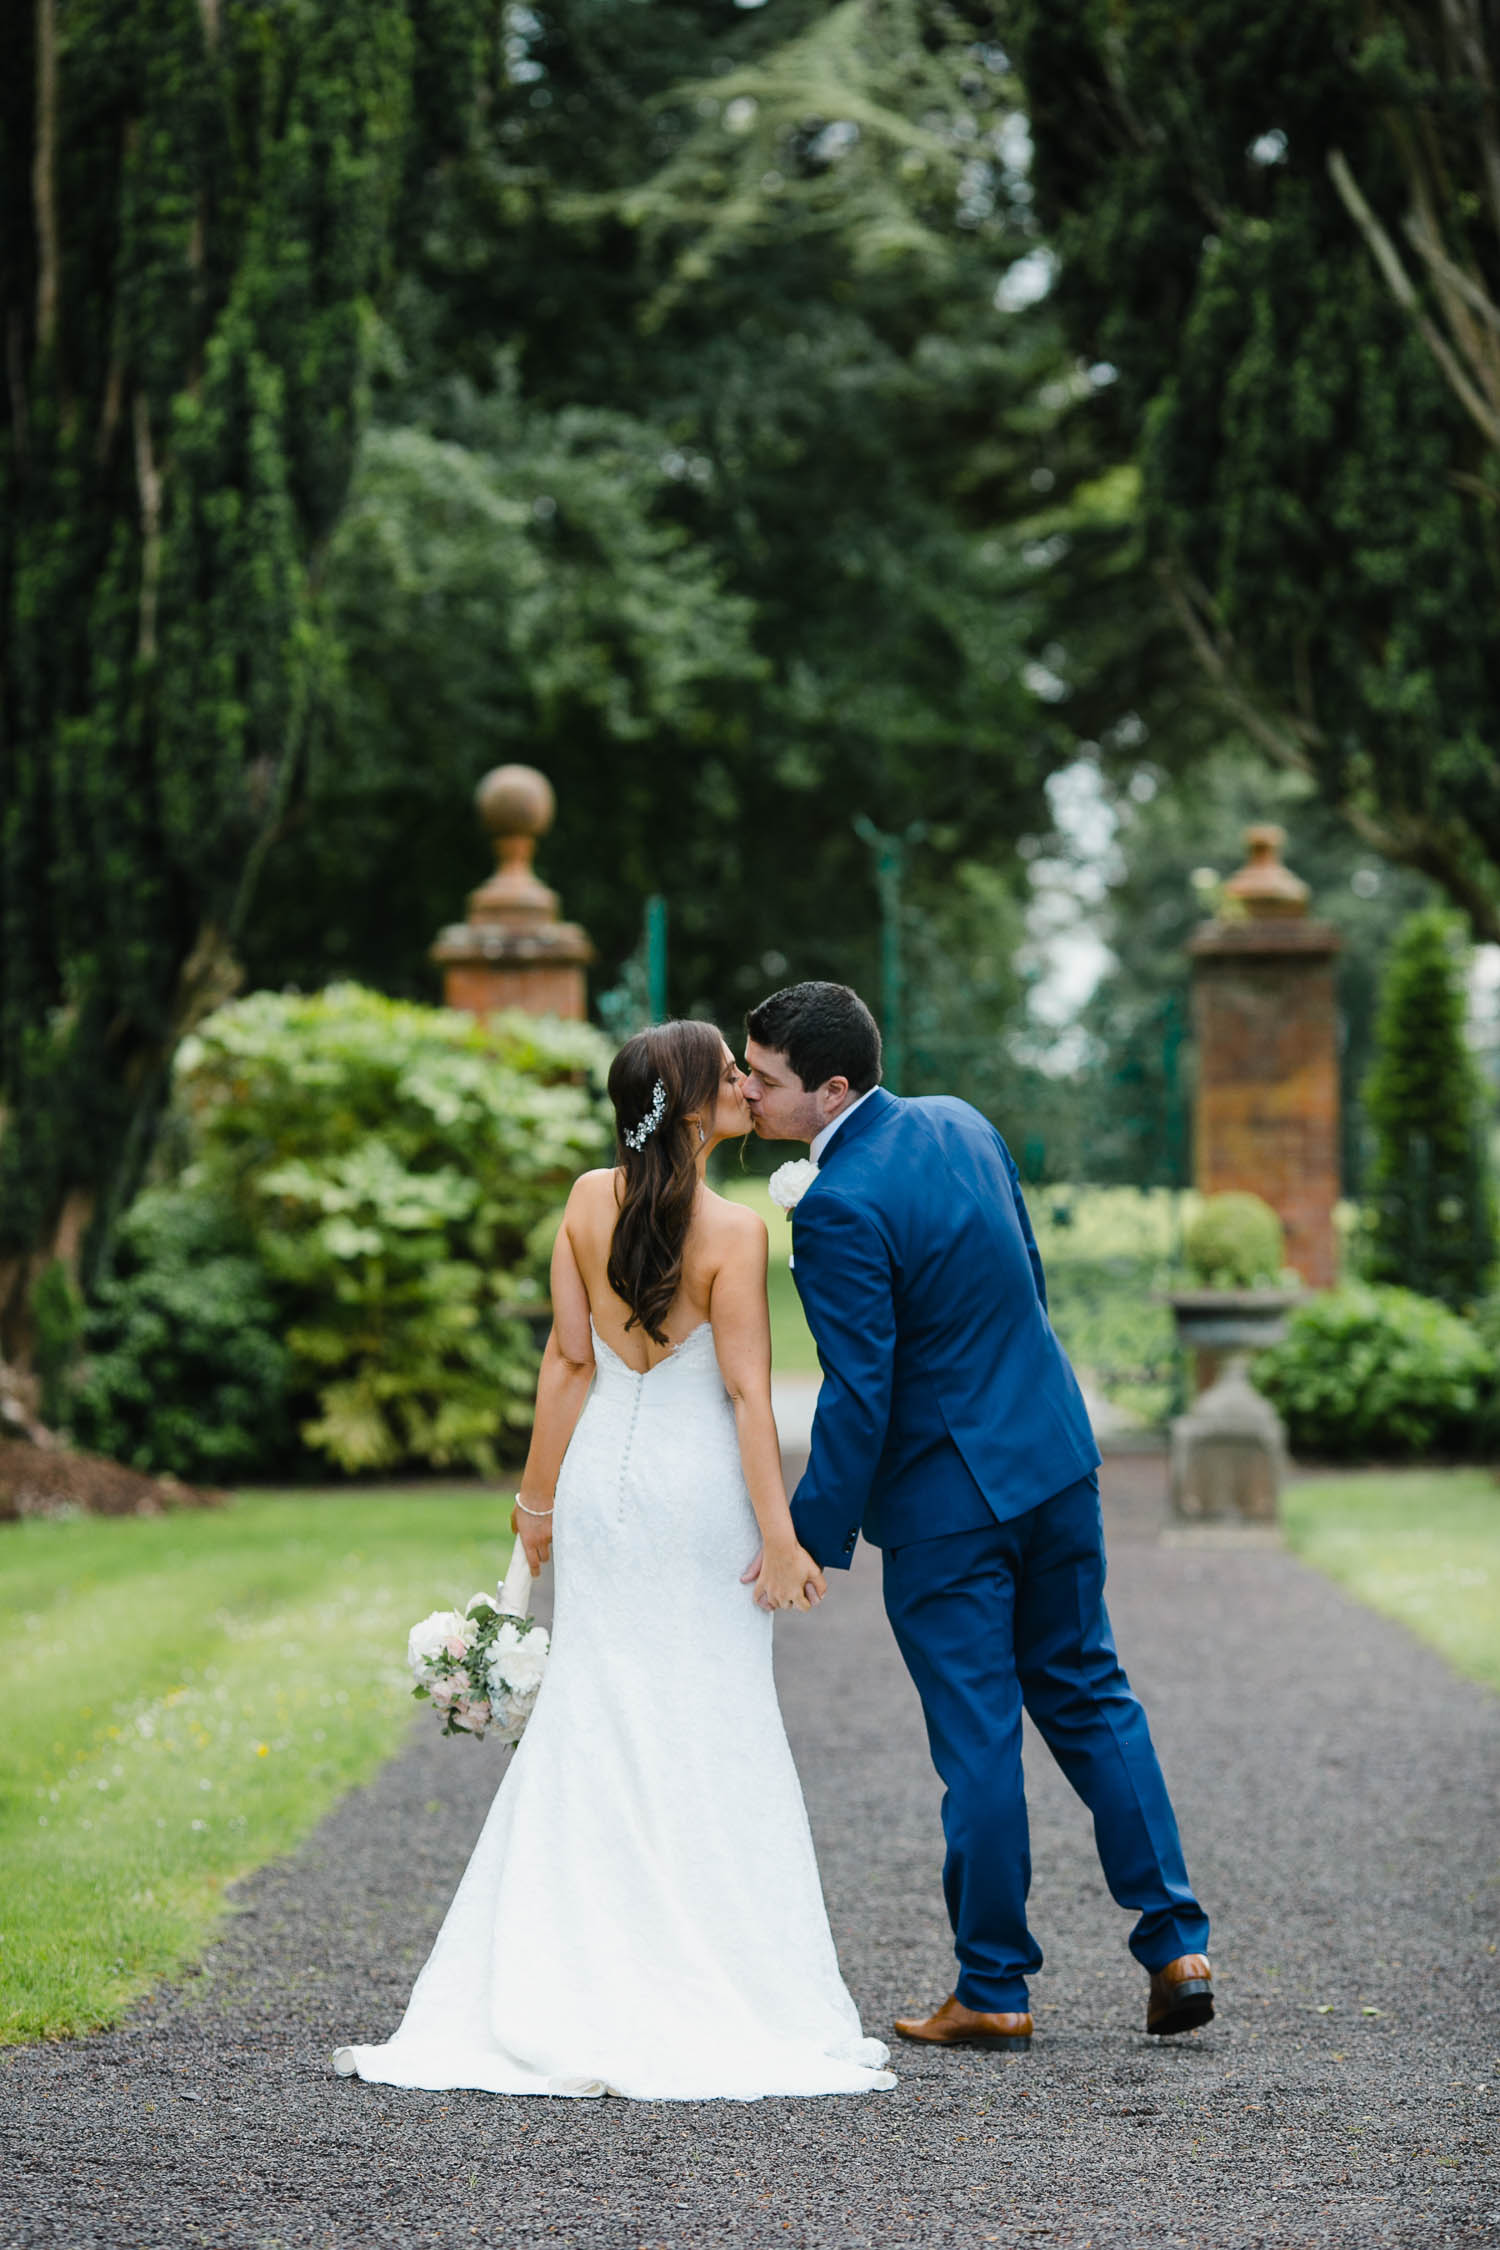 Tankardstown House Wall Garden Bride And Groom Photo